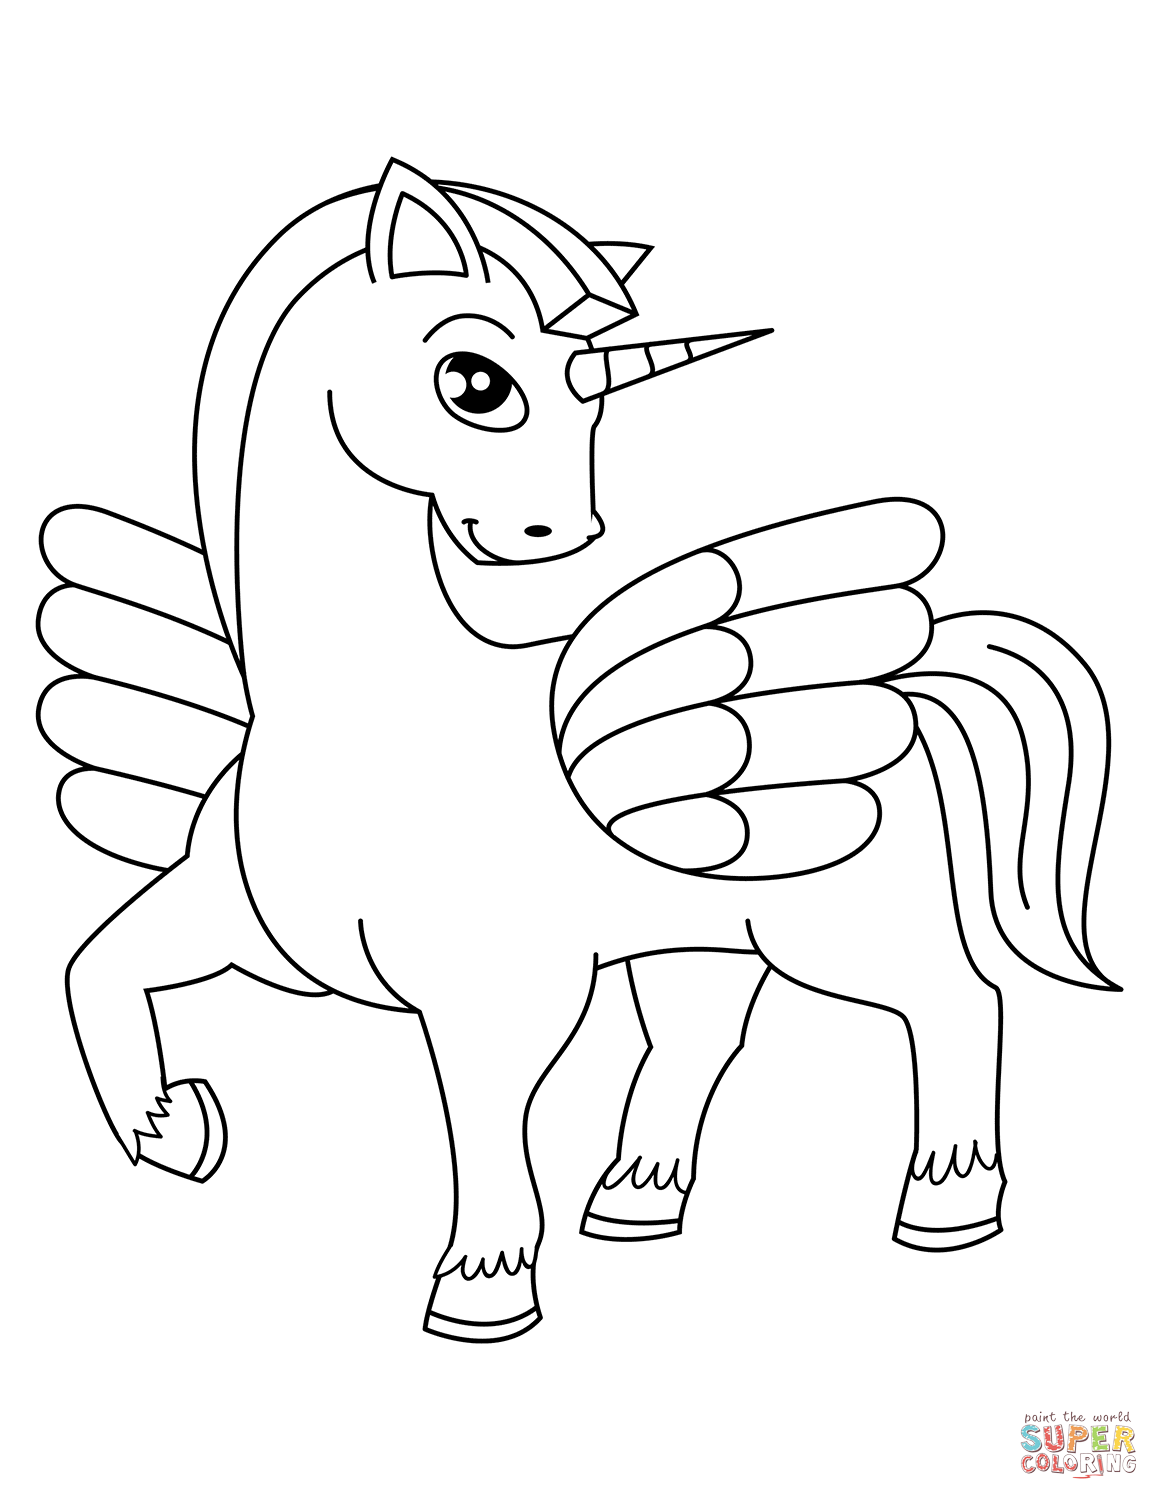 coloring unicorn kids drawing unicorns to download unicorns kids coloring pages coloring unicorn drawing kids